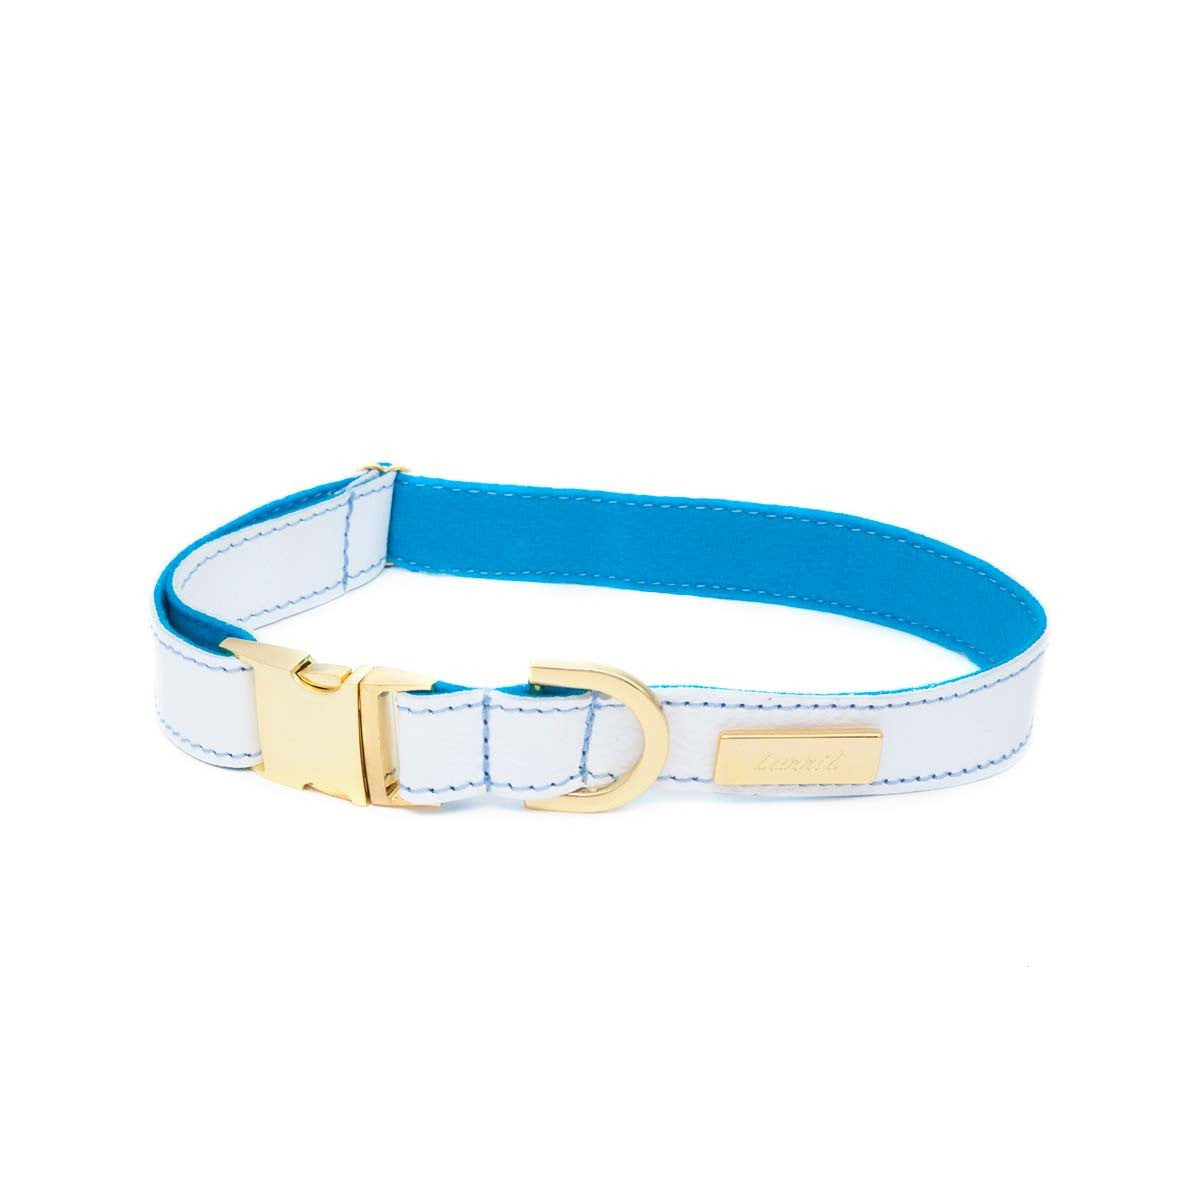 White Leather Dog Collar for your Bull Terrier - Durable, Soft Leather & Soft Wool Lining